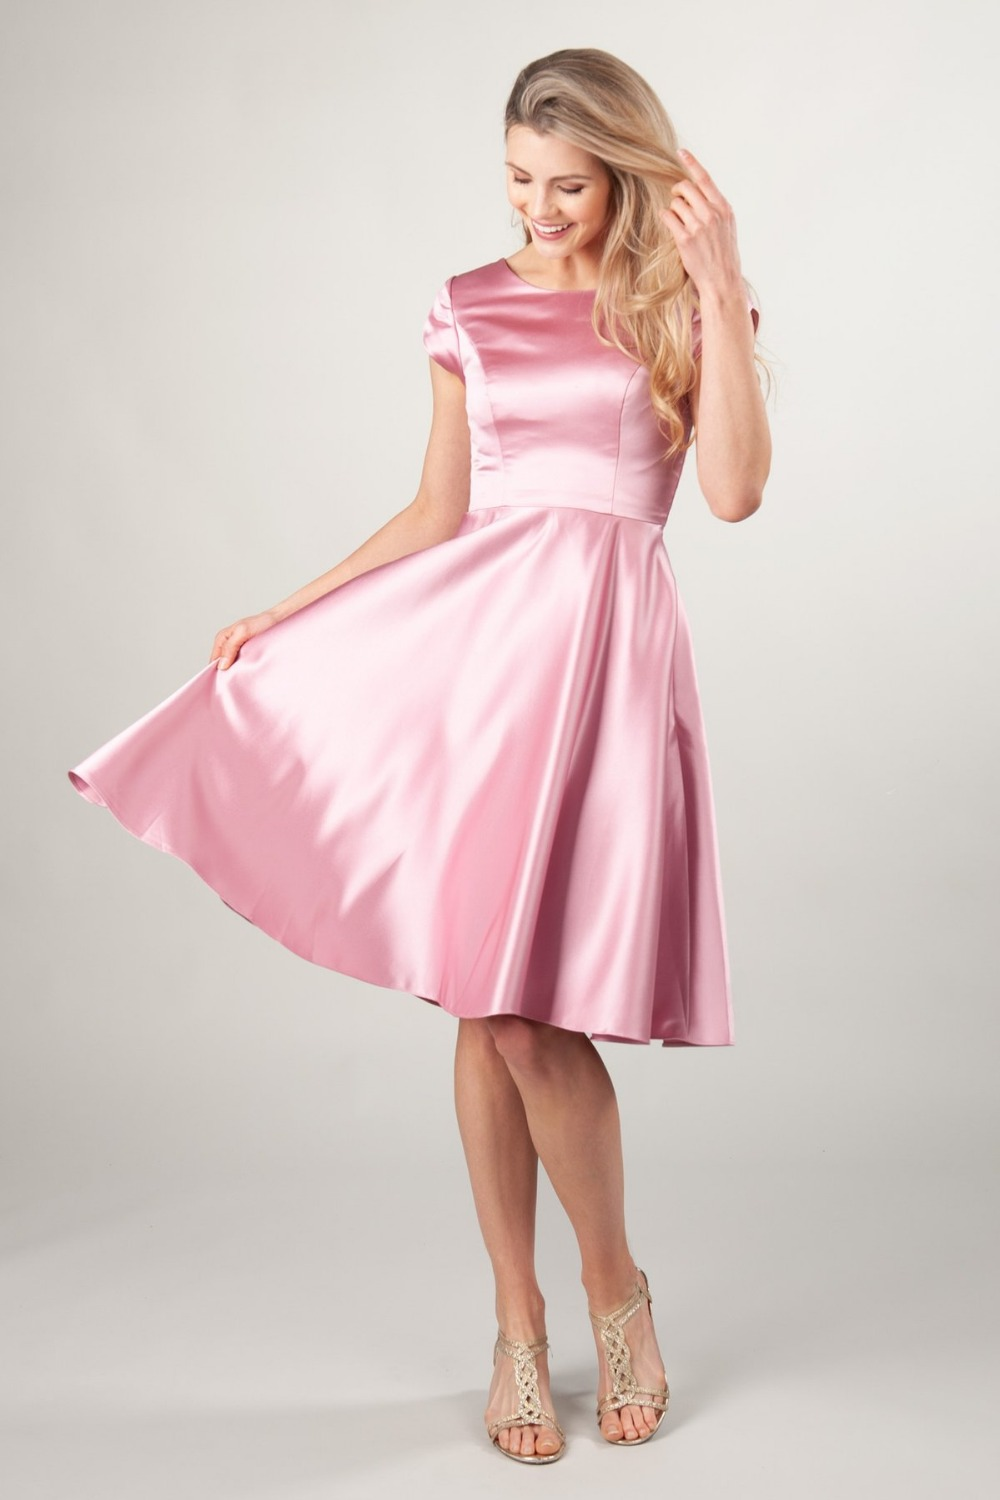 Pink Satin A-line Short Modest   Bridesmaid     Dresses   With Cap Sleeves O Neck Knee Length Informal Modest   Bridesmaid   Gown Custom